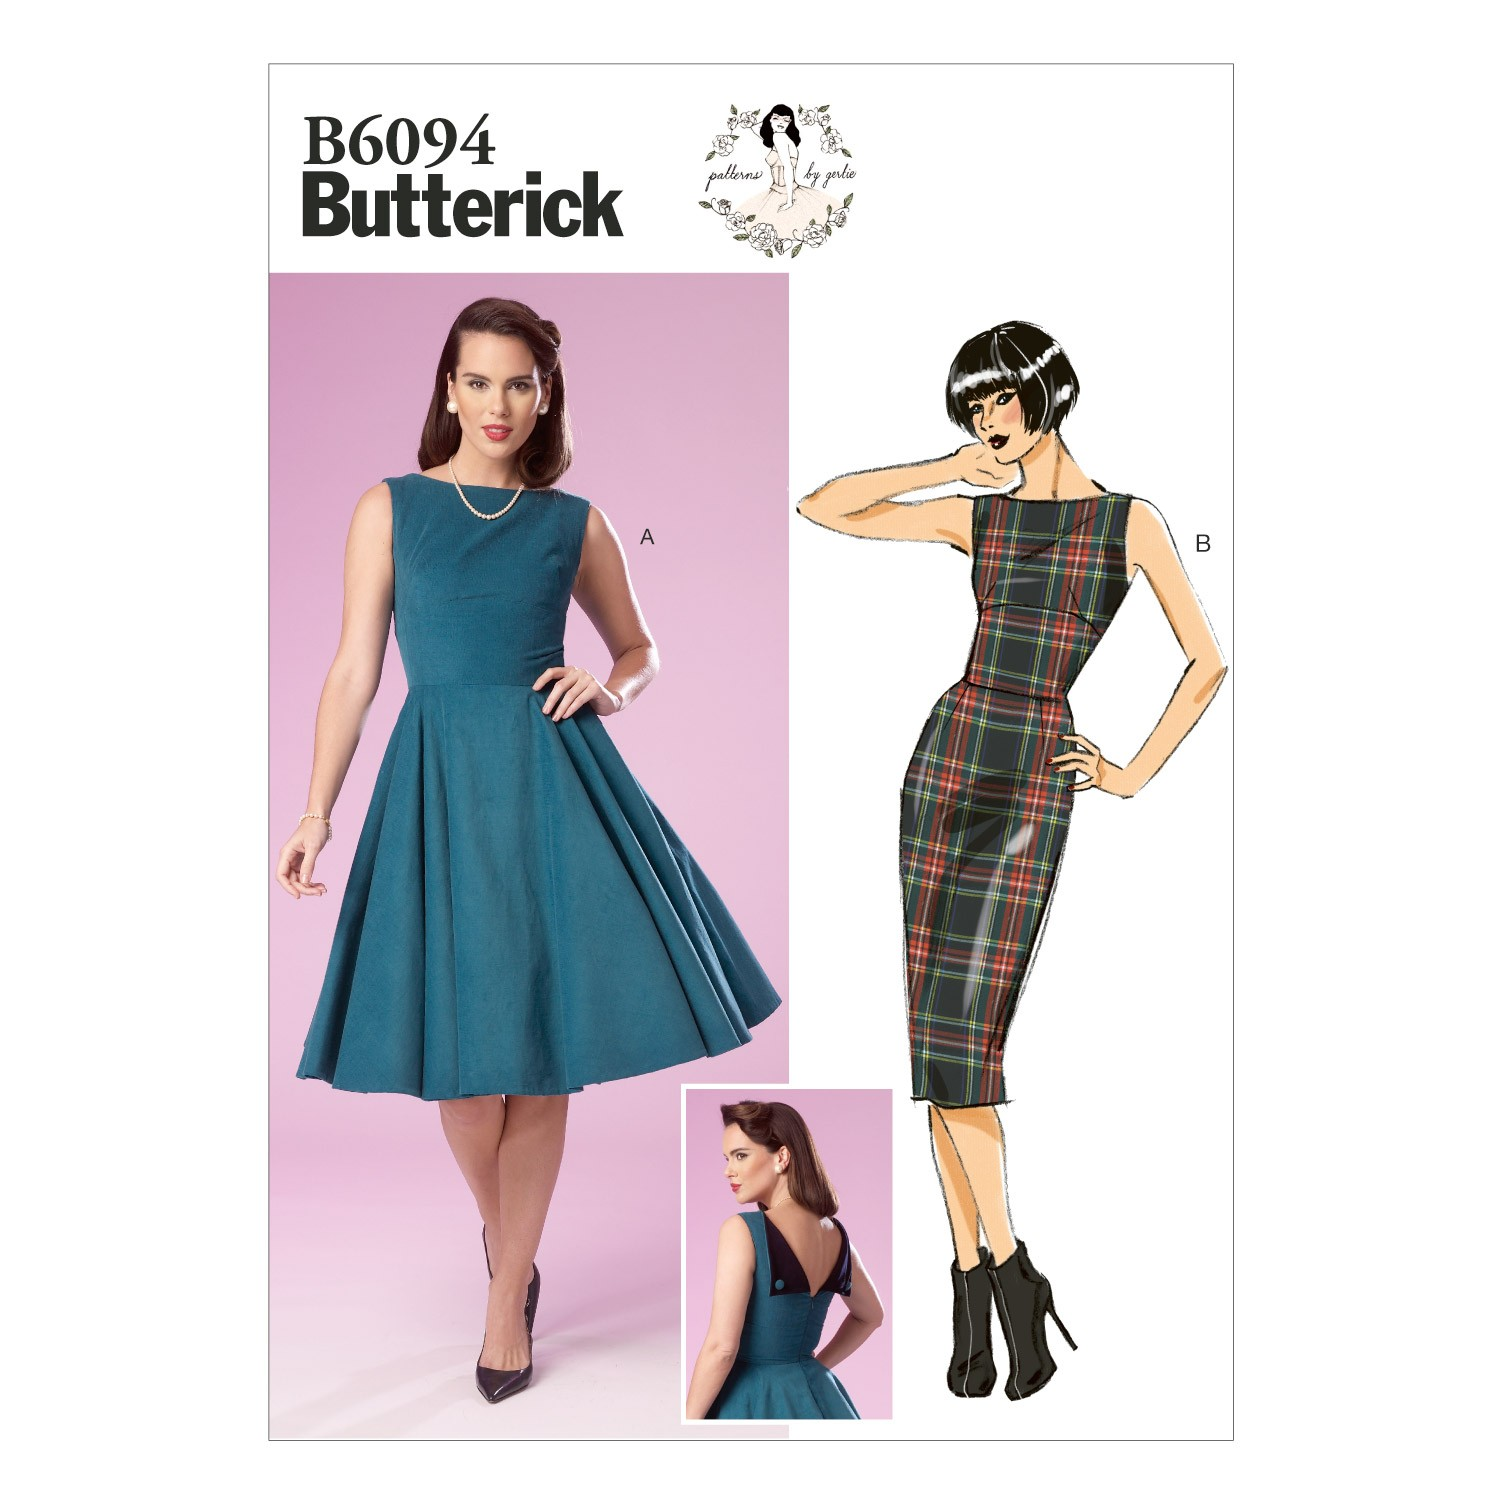 Butterick Sewing Pattern 6094 Misses' Dress Close Fitting Lined Bodice